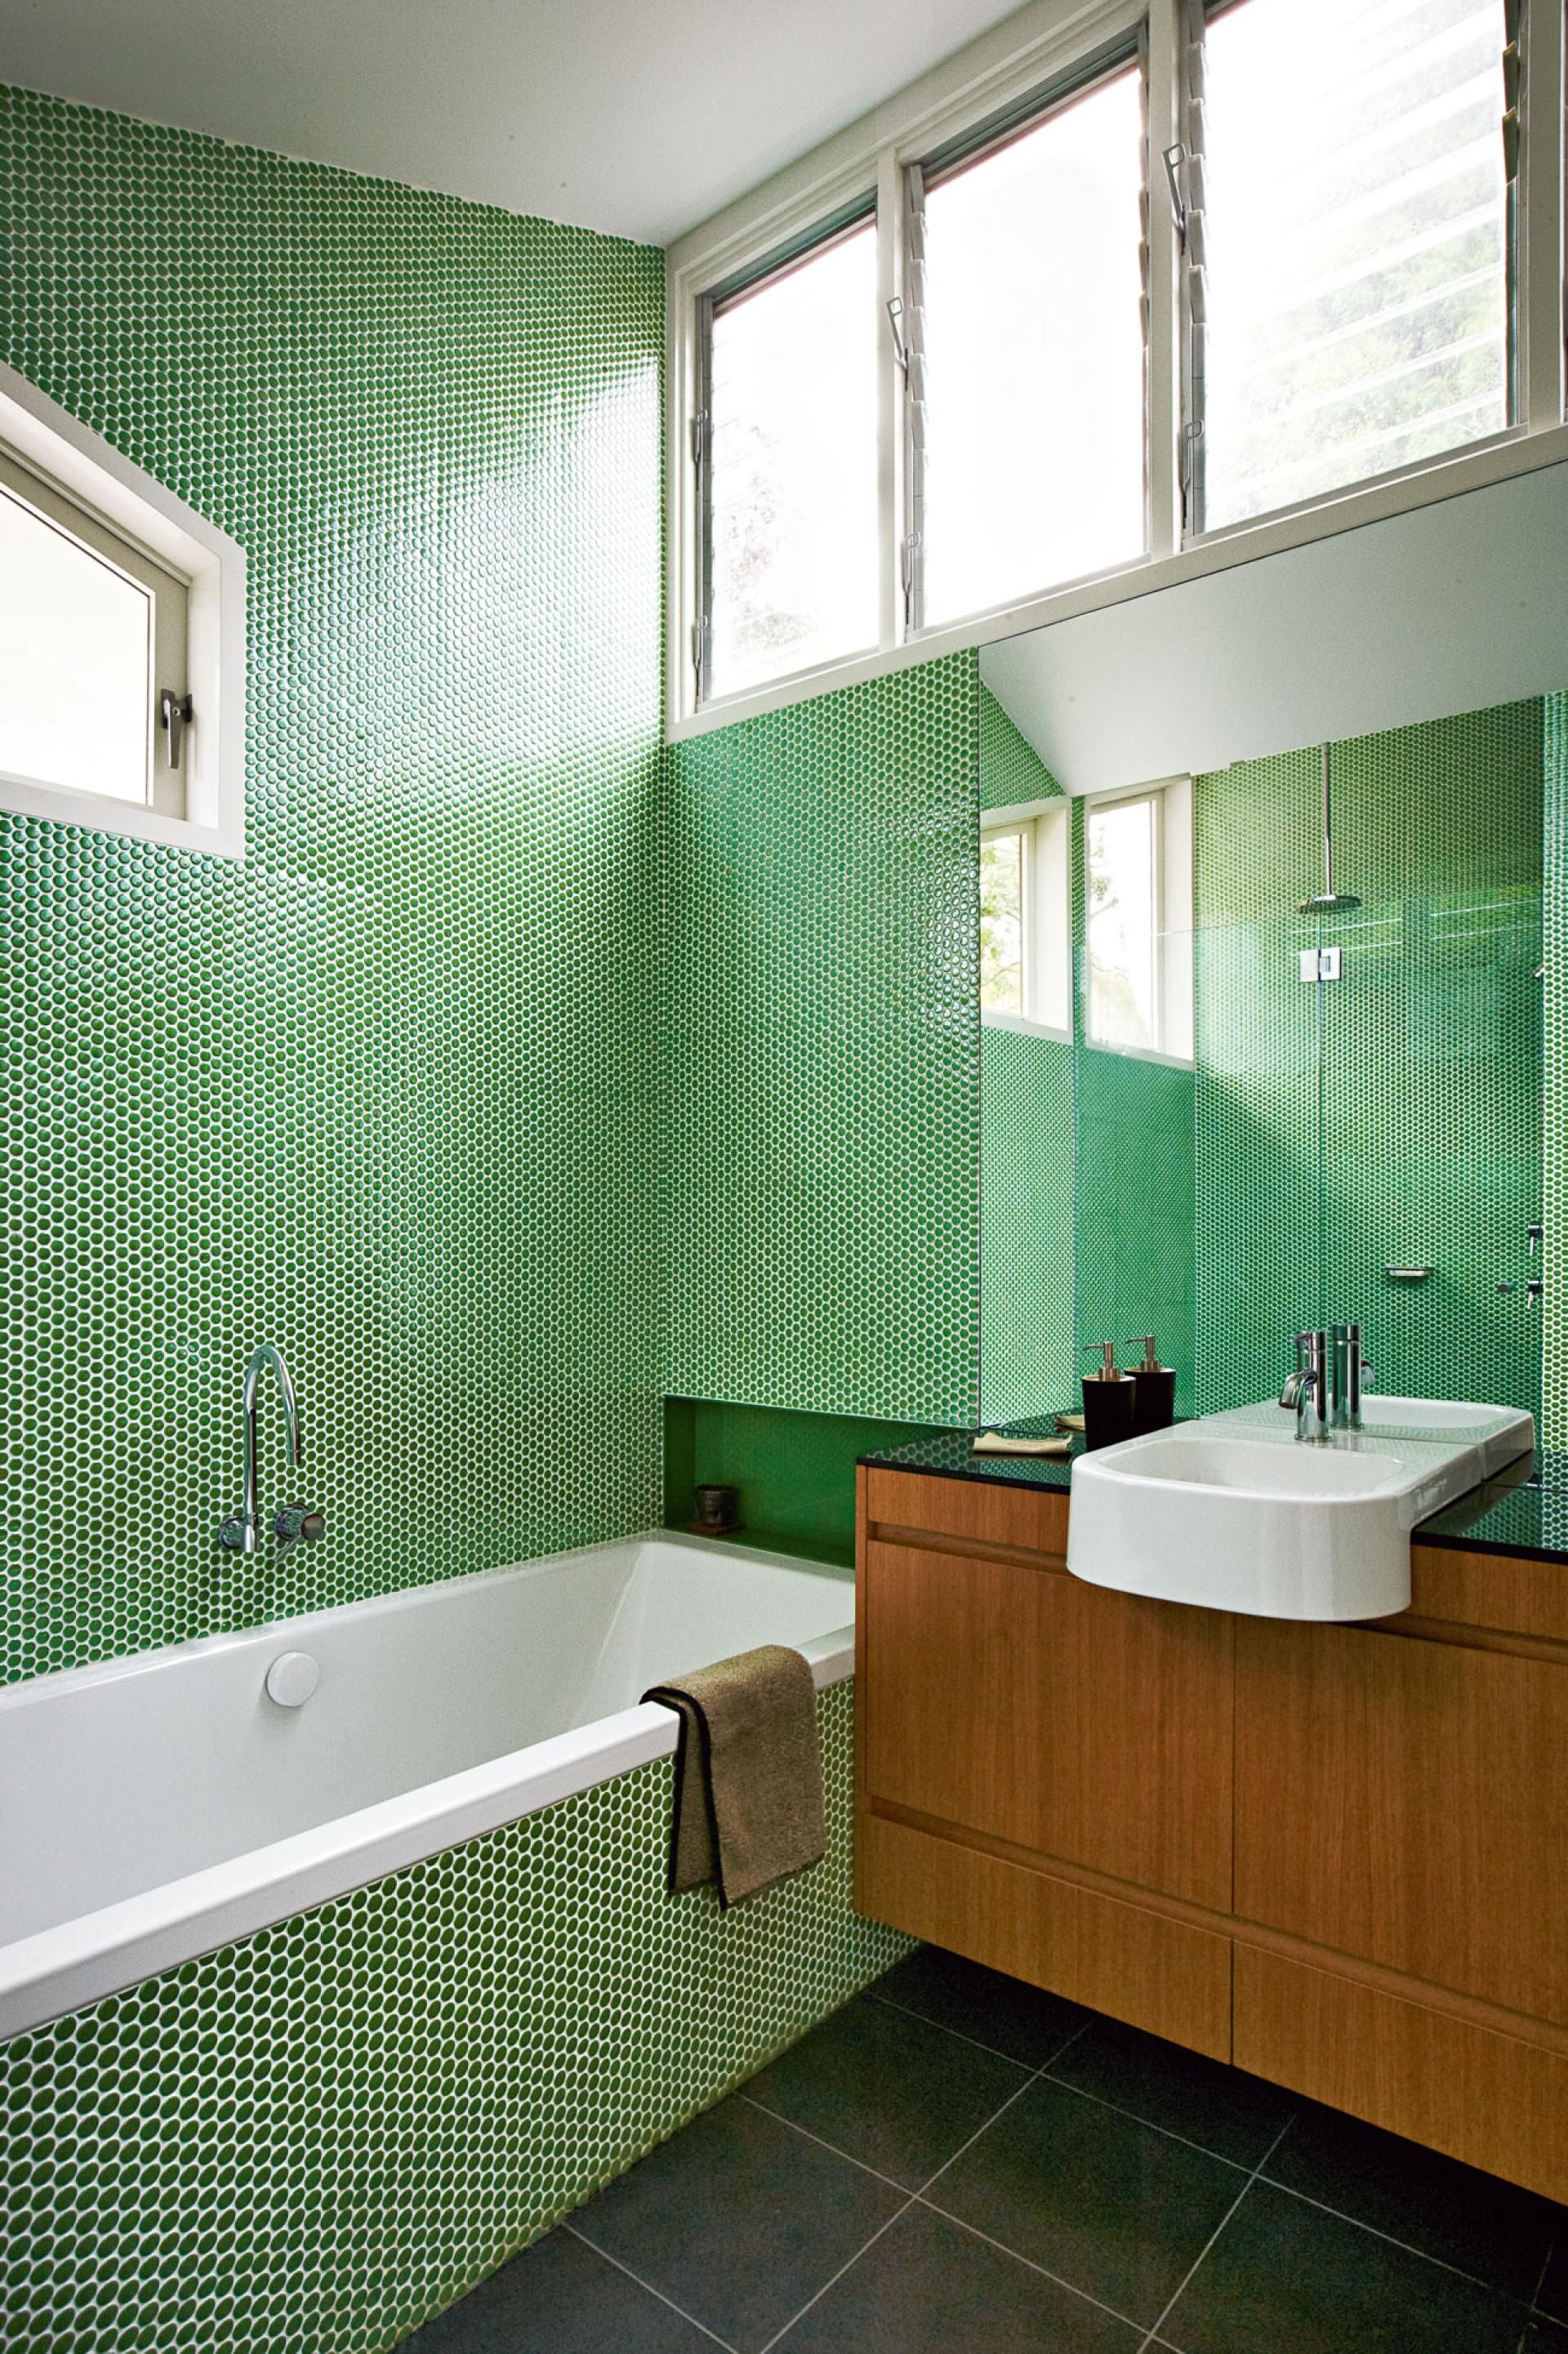 Green penny tile in the bathroom. | Salle de bain | Pinterest ...